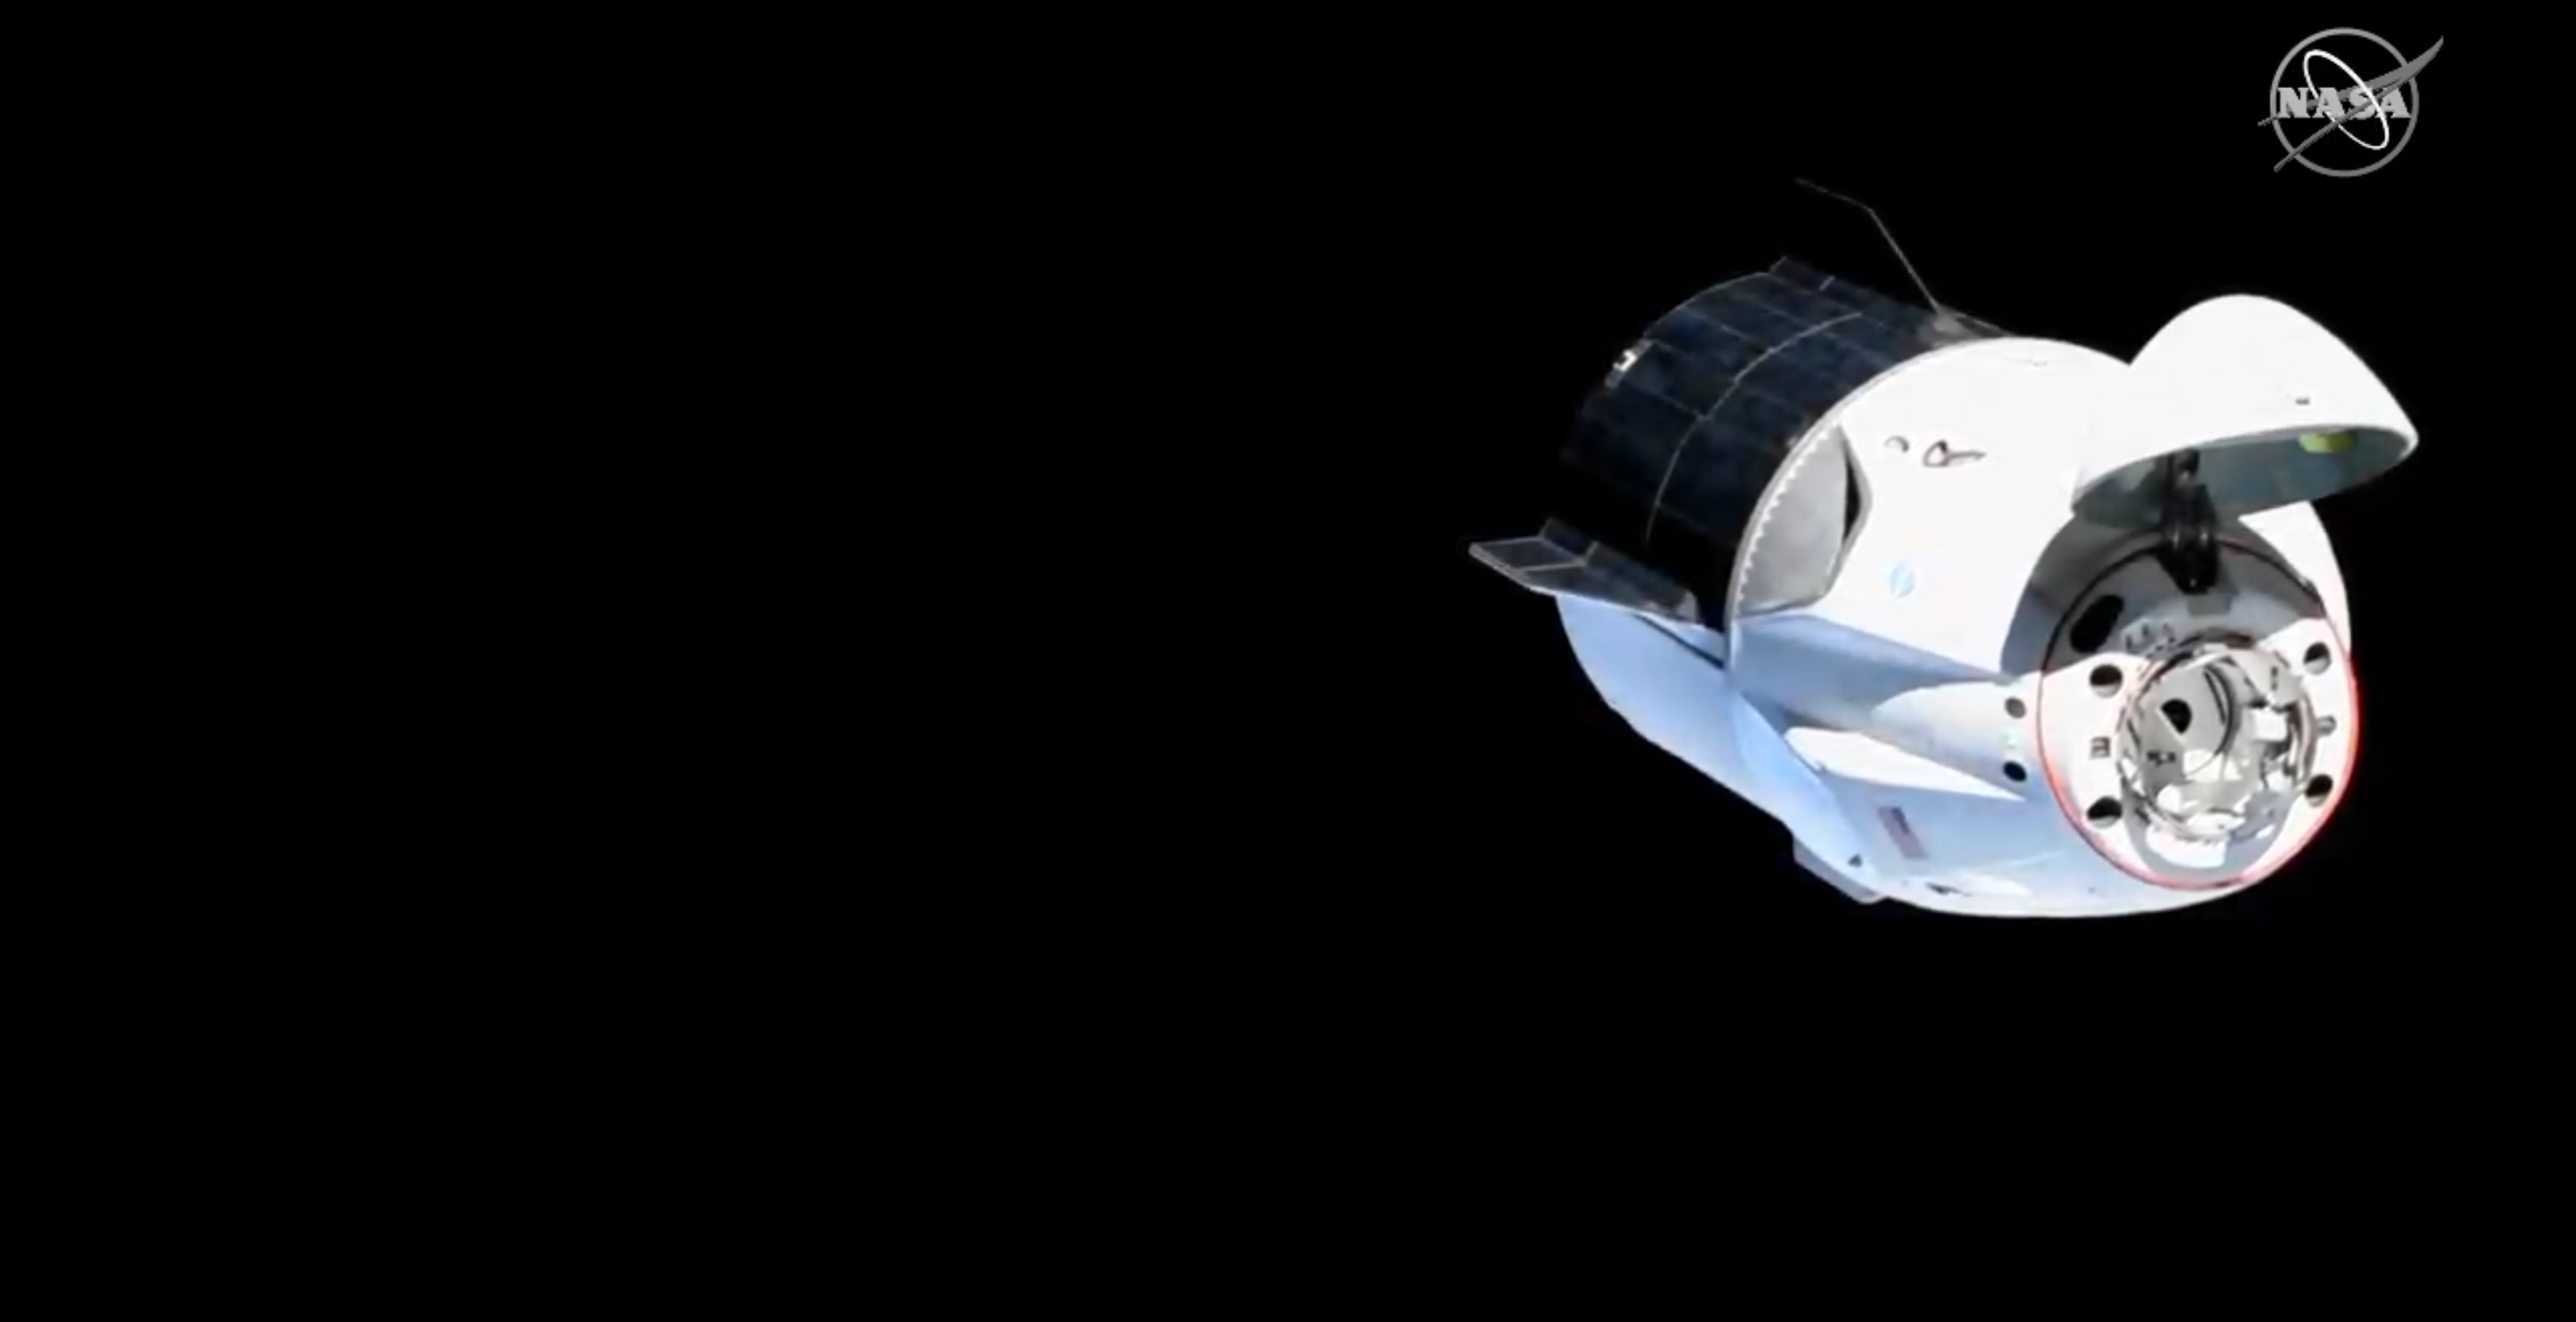 Crew Dragon DM-1 ISS arrival 030319 (SpaceX) 7